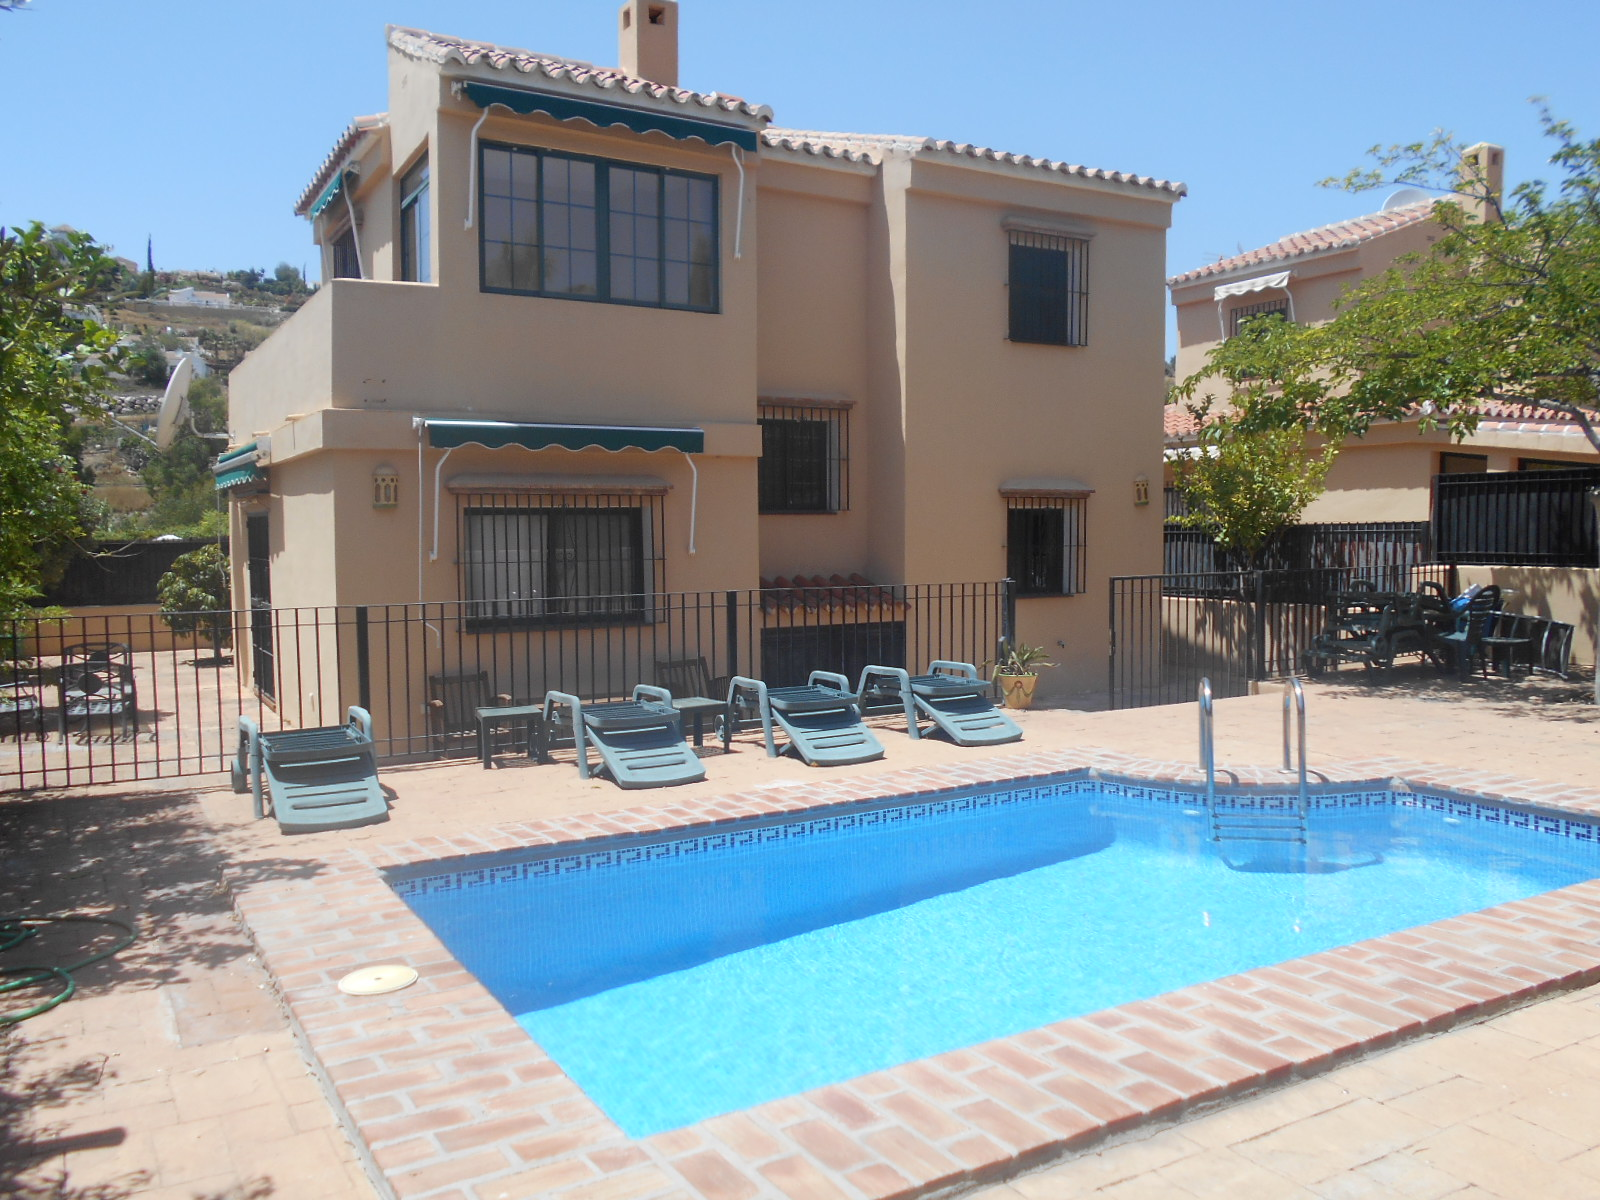 4 BEDROOM VILLA IN PUENTE DON MANUEL FROM 600 P/M WINTER LETS OCT/APRIL LONG FOR RENT